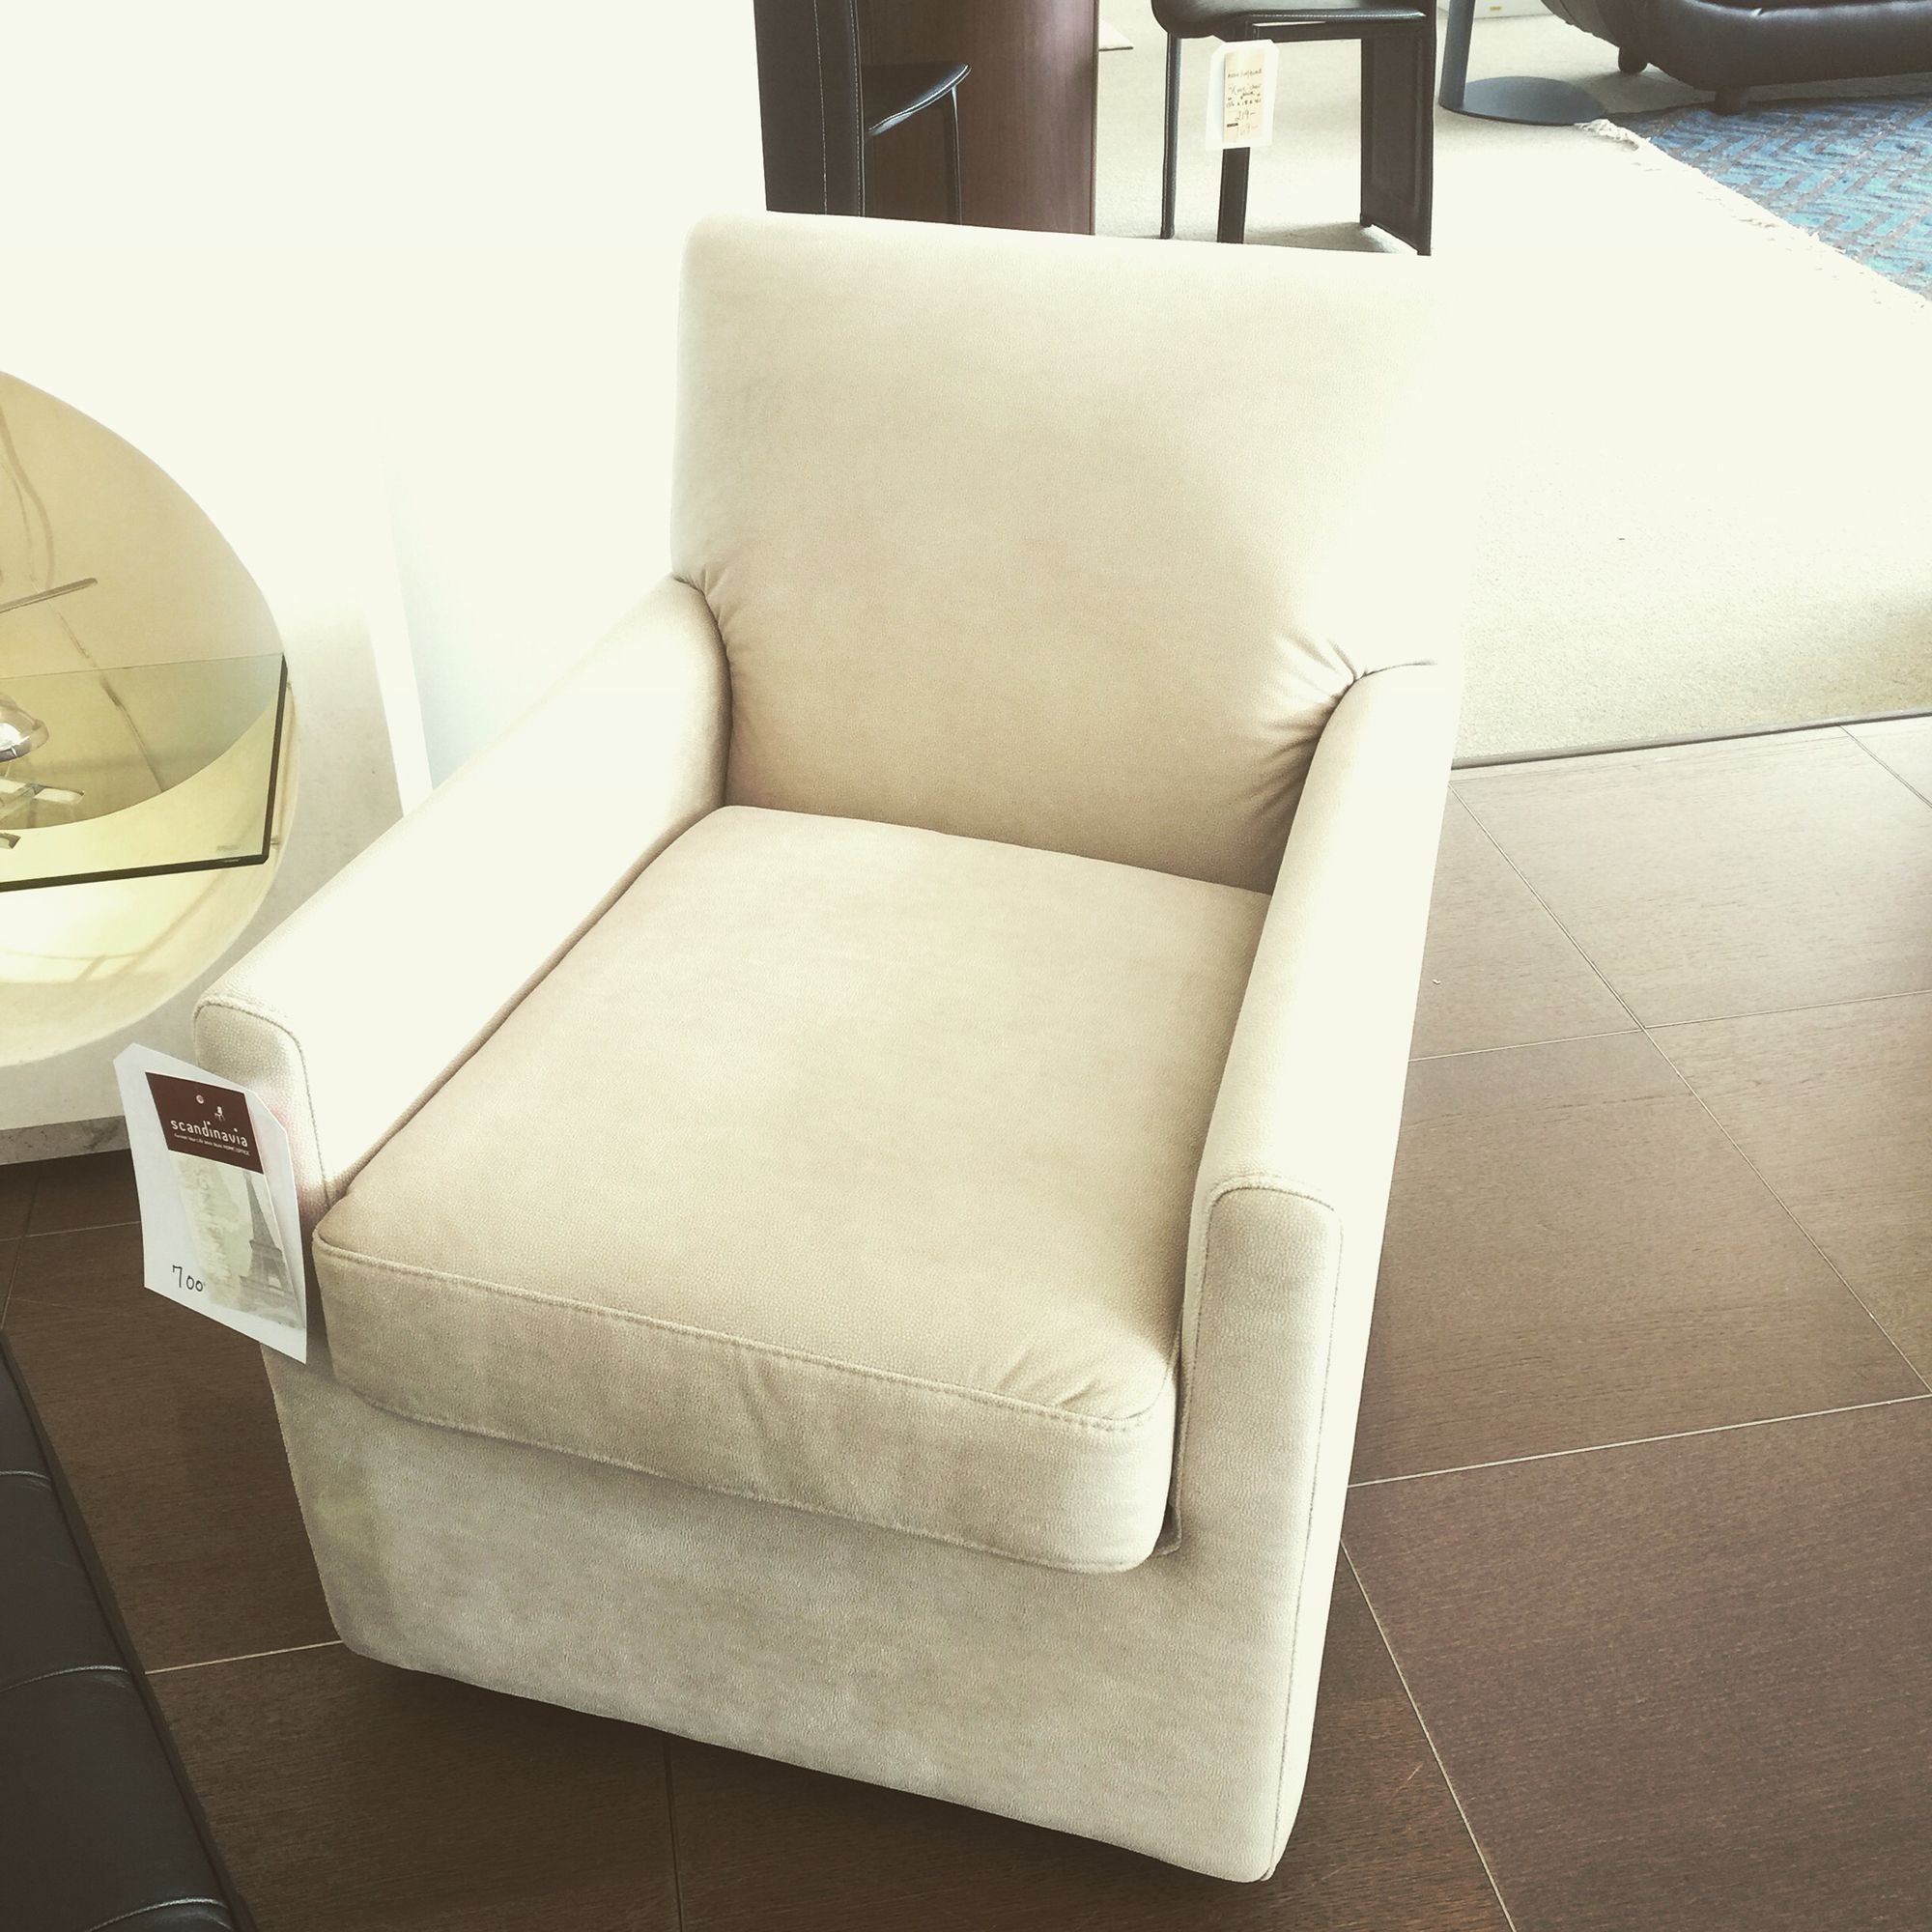 Scandinavia inc New Orleans Metairie Louisiana Pia fabric swivel chair